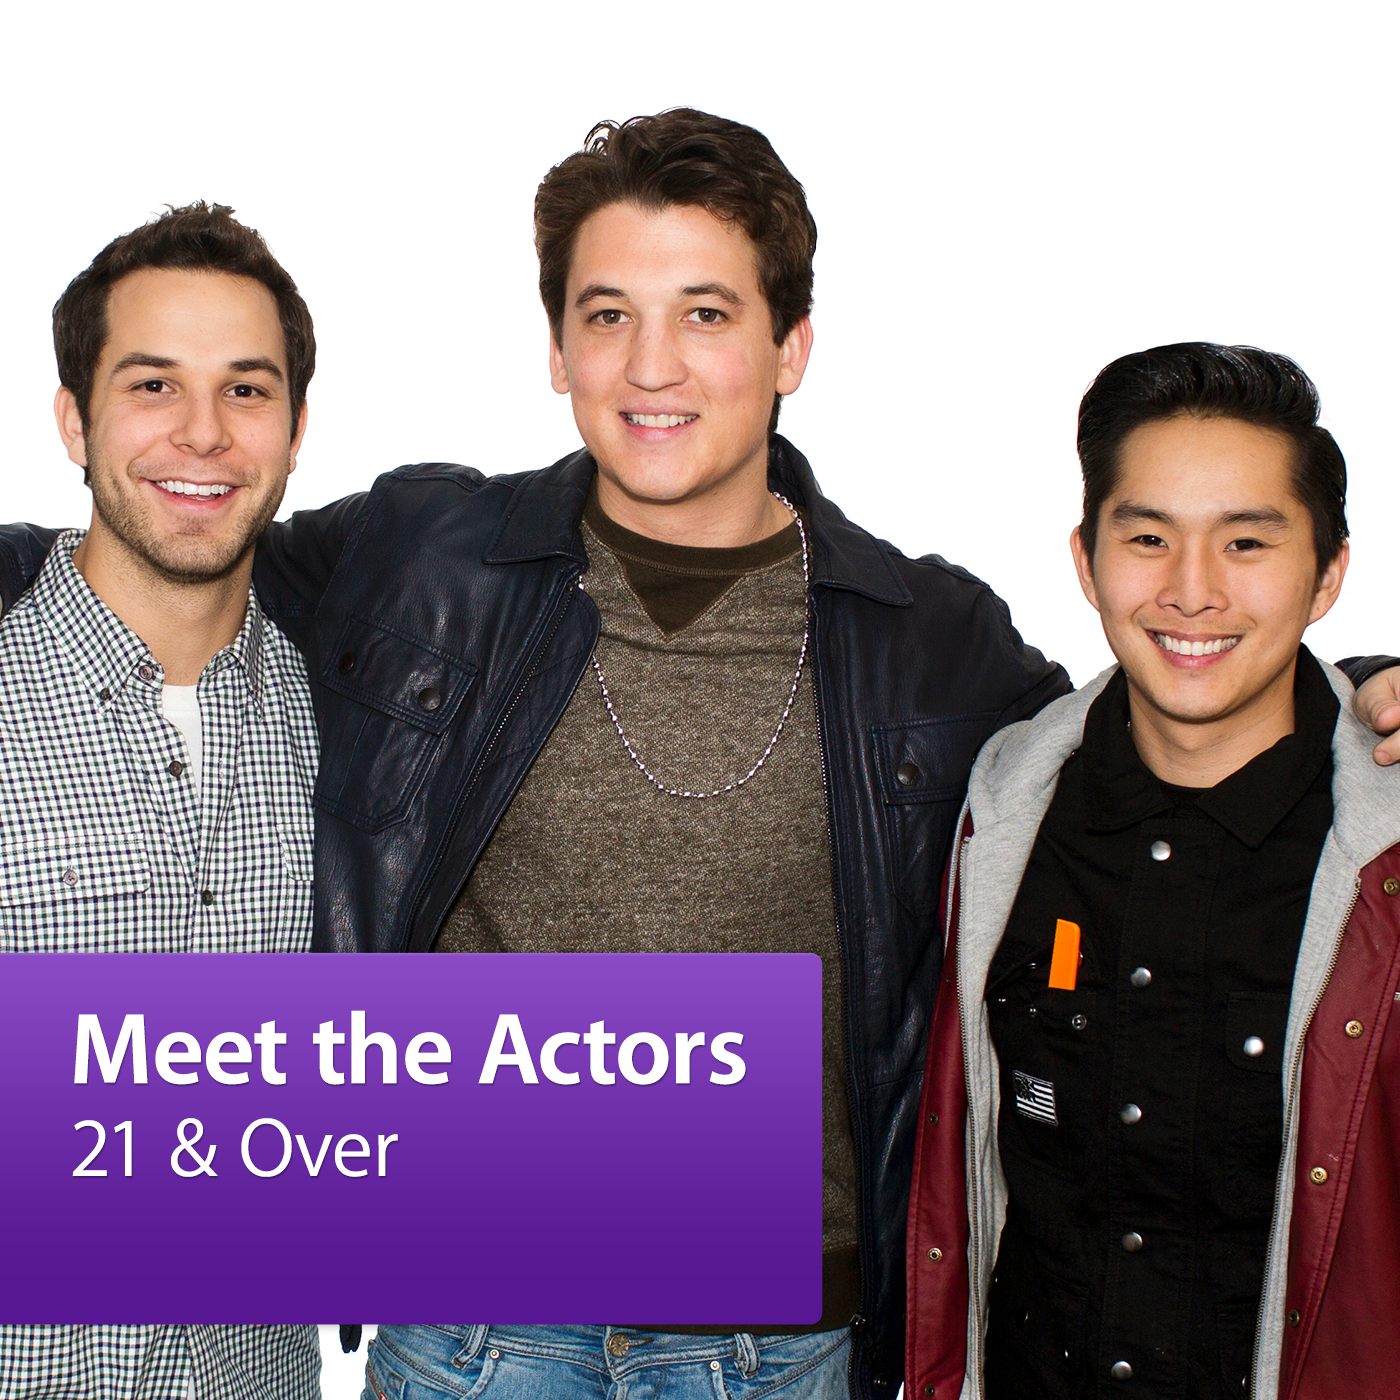 21 & Over: Meet the Actors